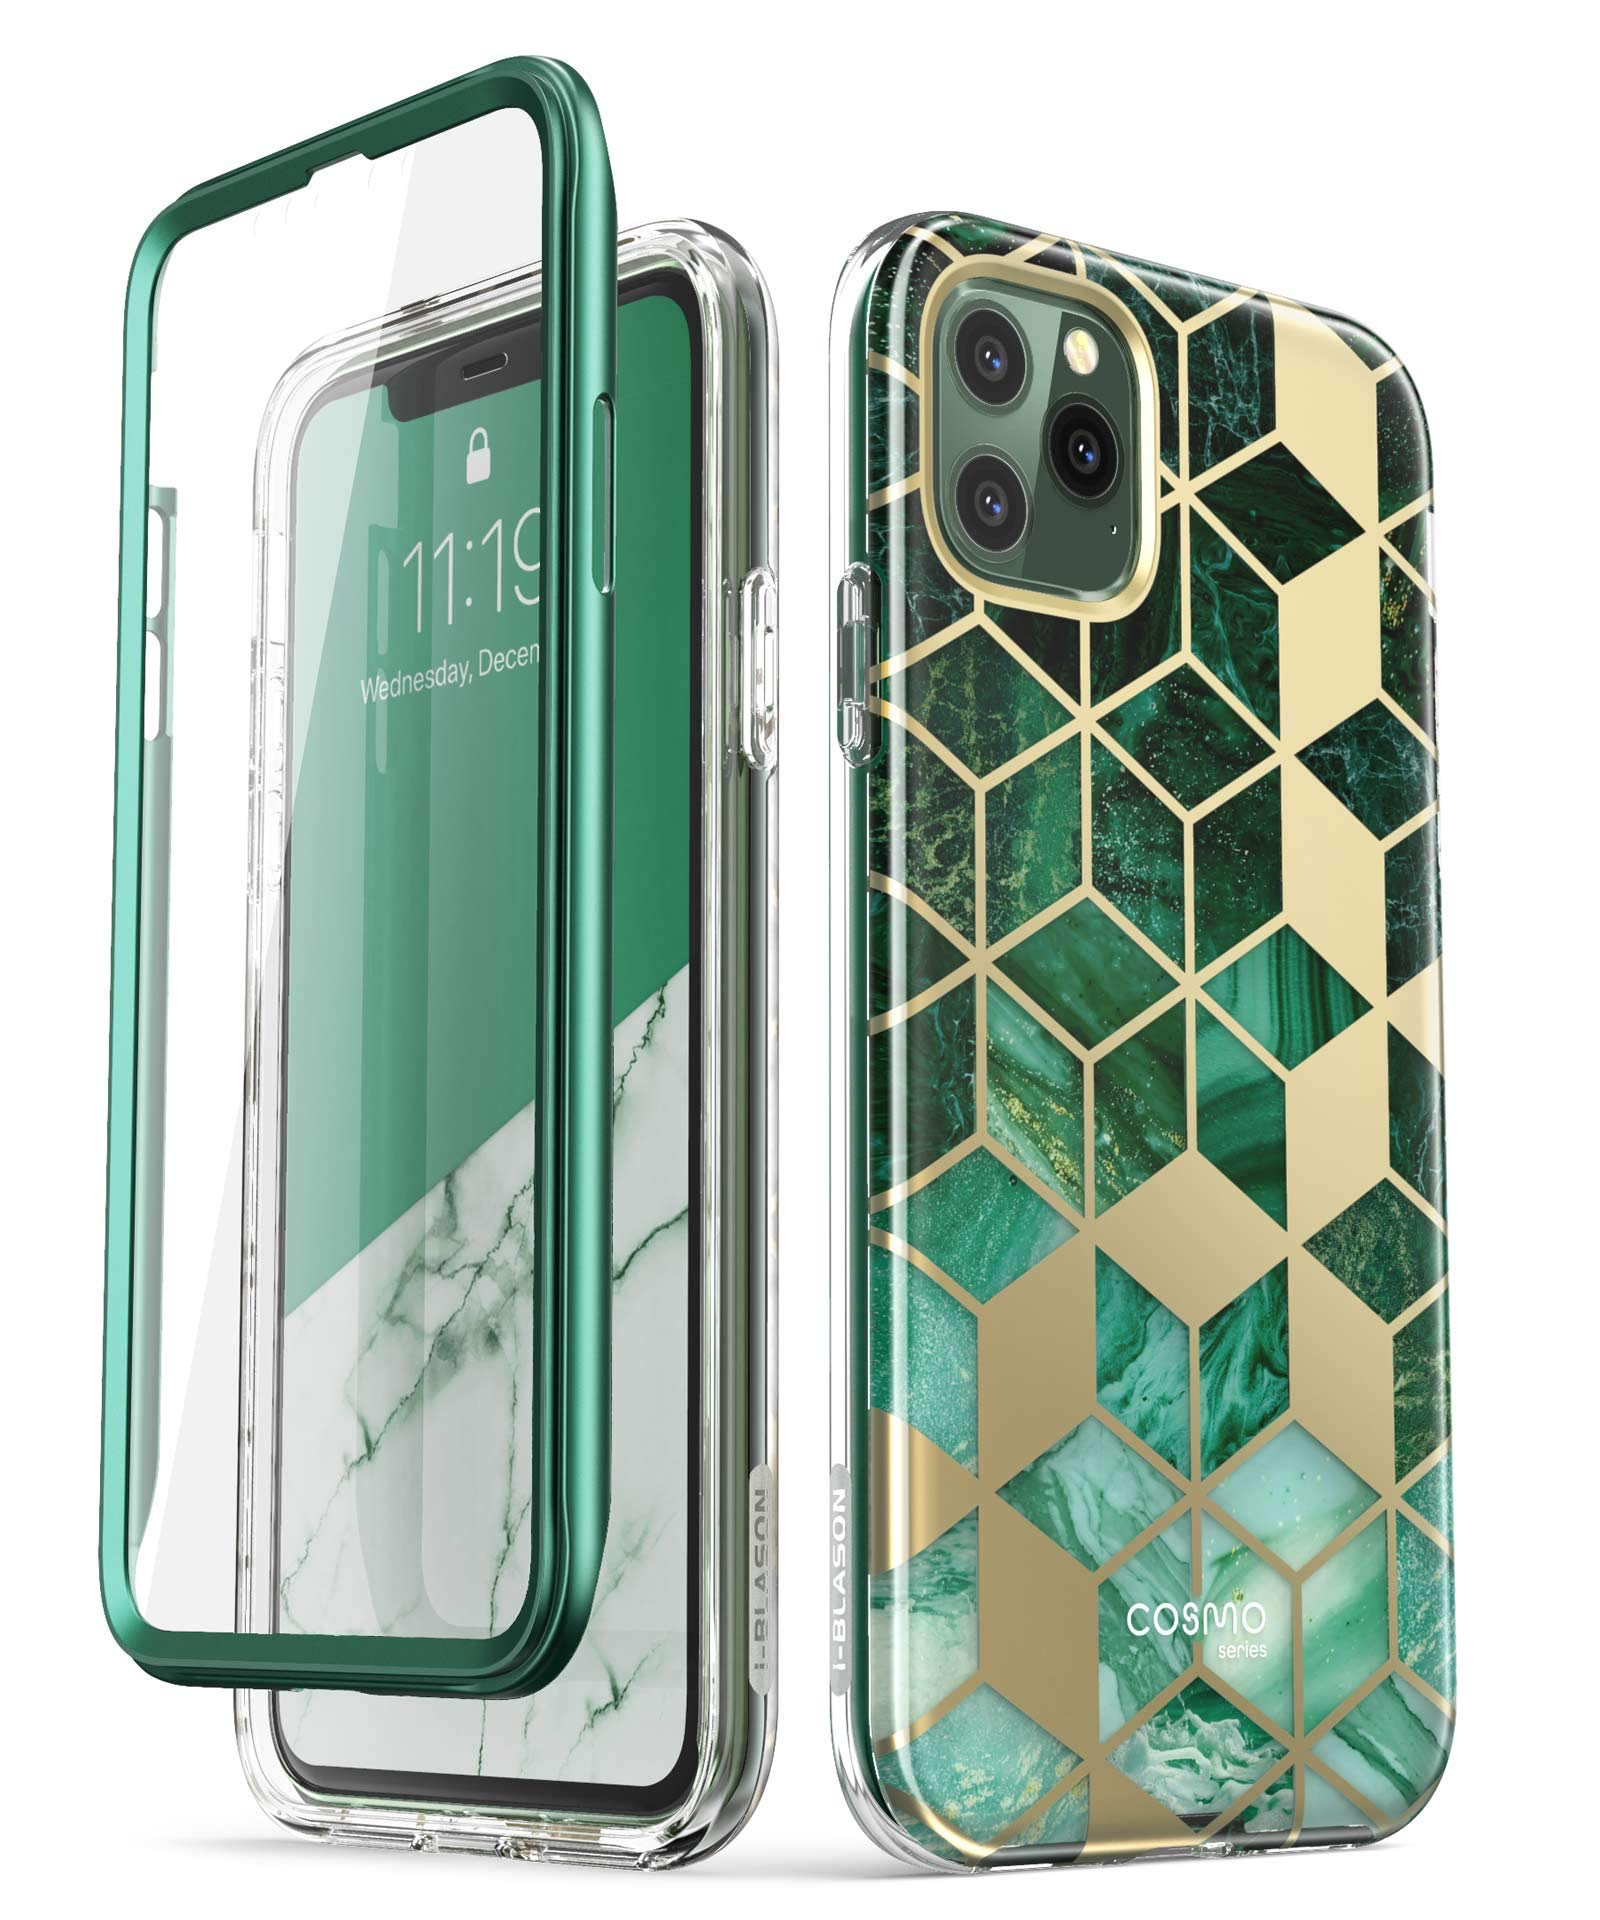 i-Blason Cosmo Series Case for iPhone 11 Pro 5.8 inch, Slim Full-Body Stylish Protective Case with Built-in Screen Protector (Green)